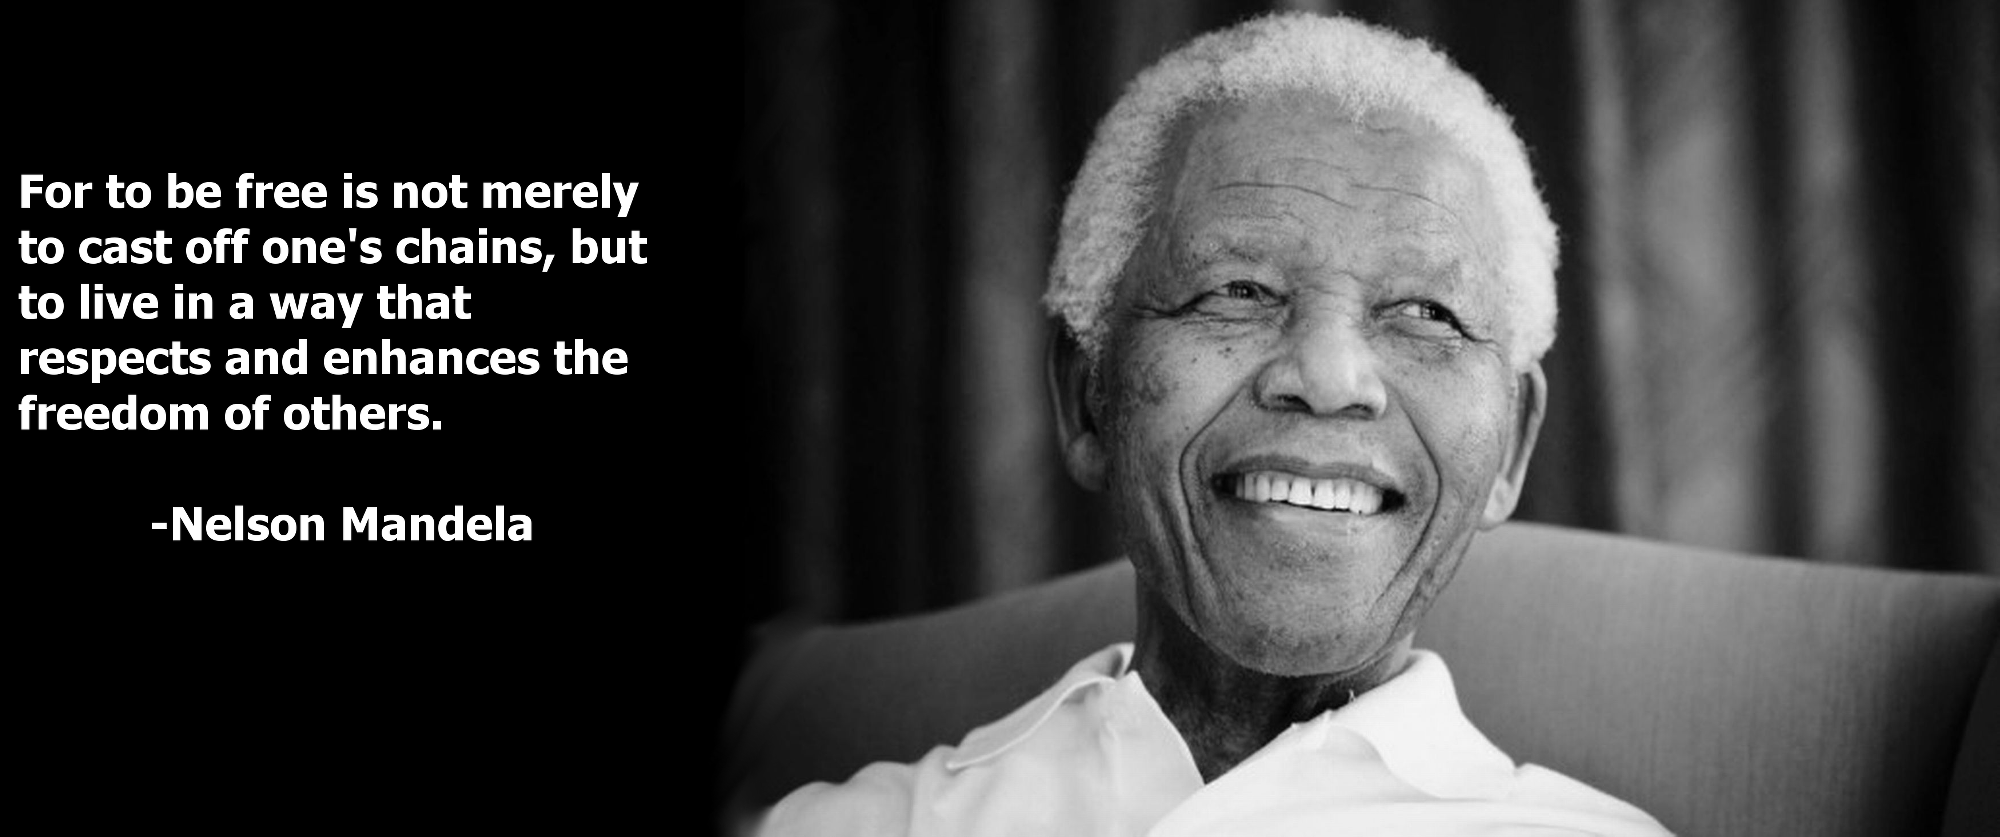 "Famous Leadership Quotes For To Be Free Is Not Merely To Cast Off""  Nelson Mandela"